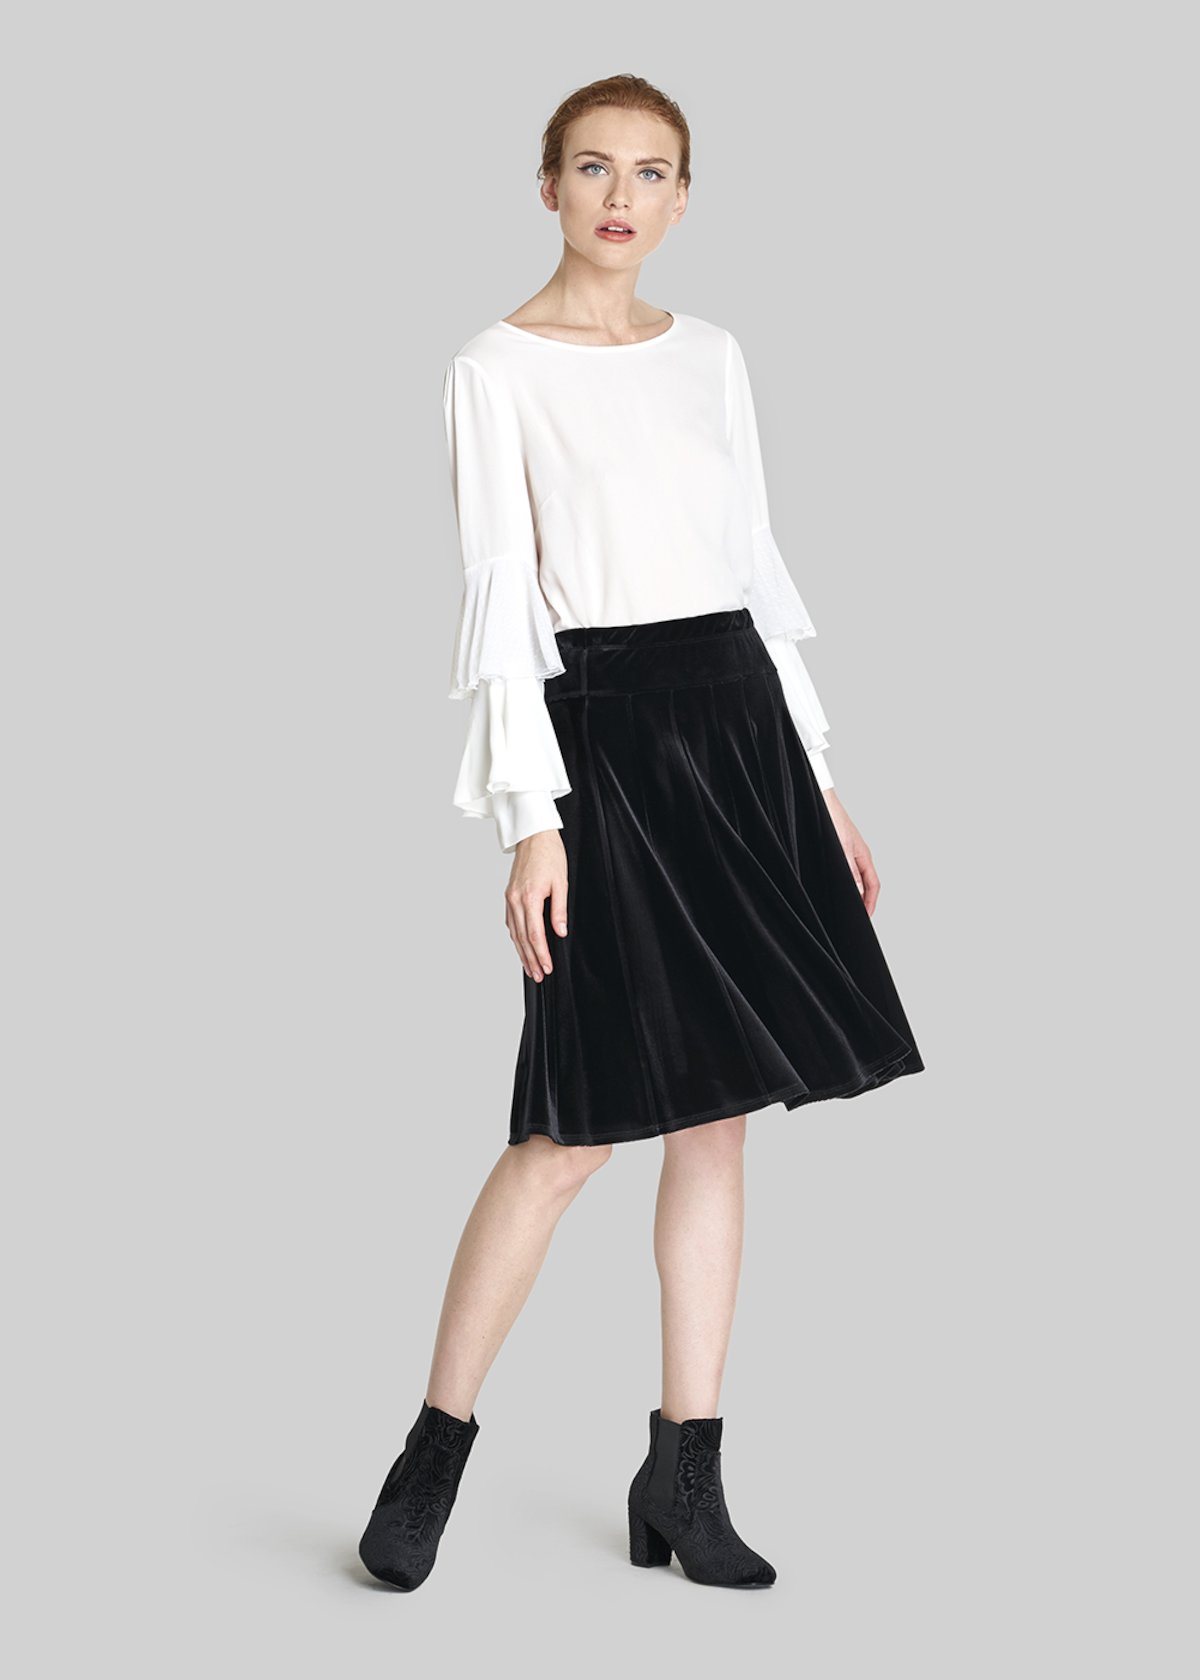 Giuditta5 velvet skirt with elastic waist - Black - Woman - Category image